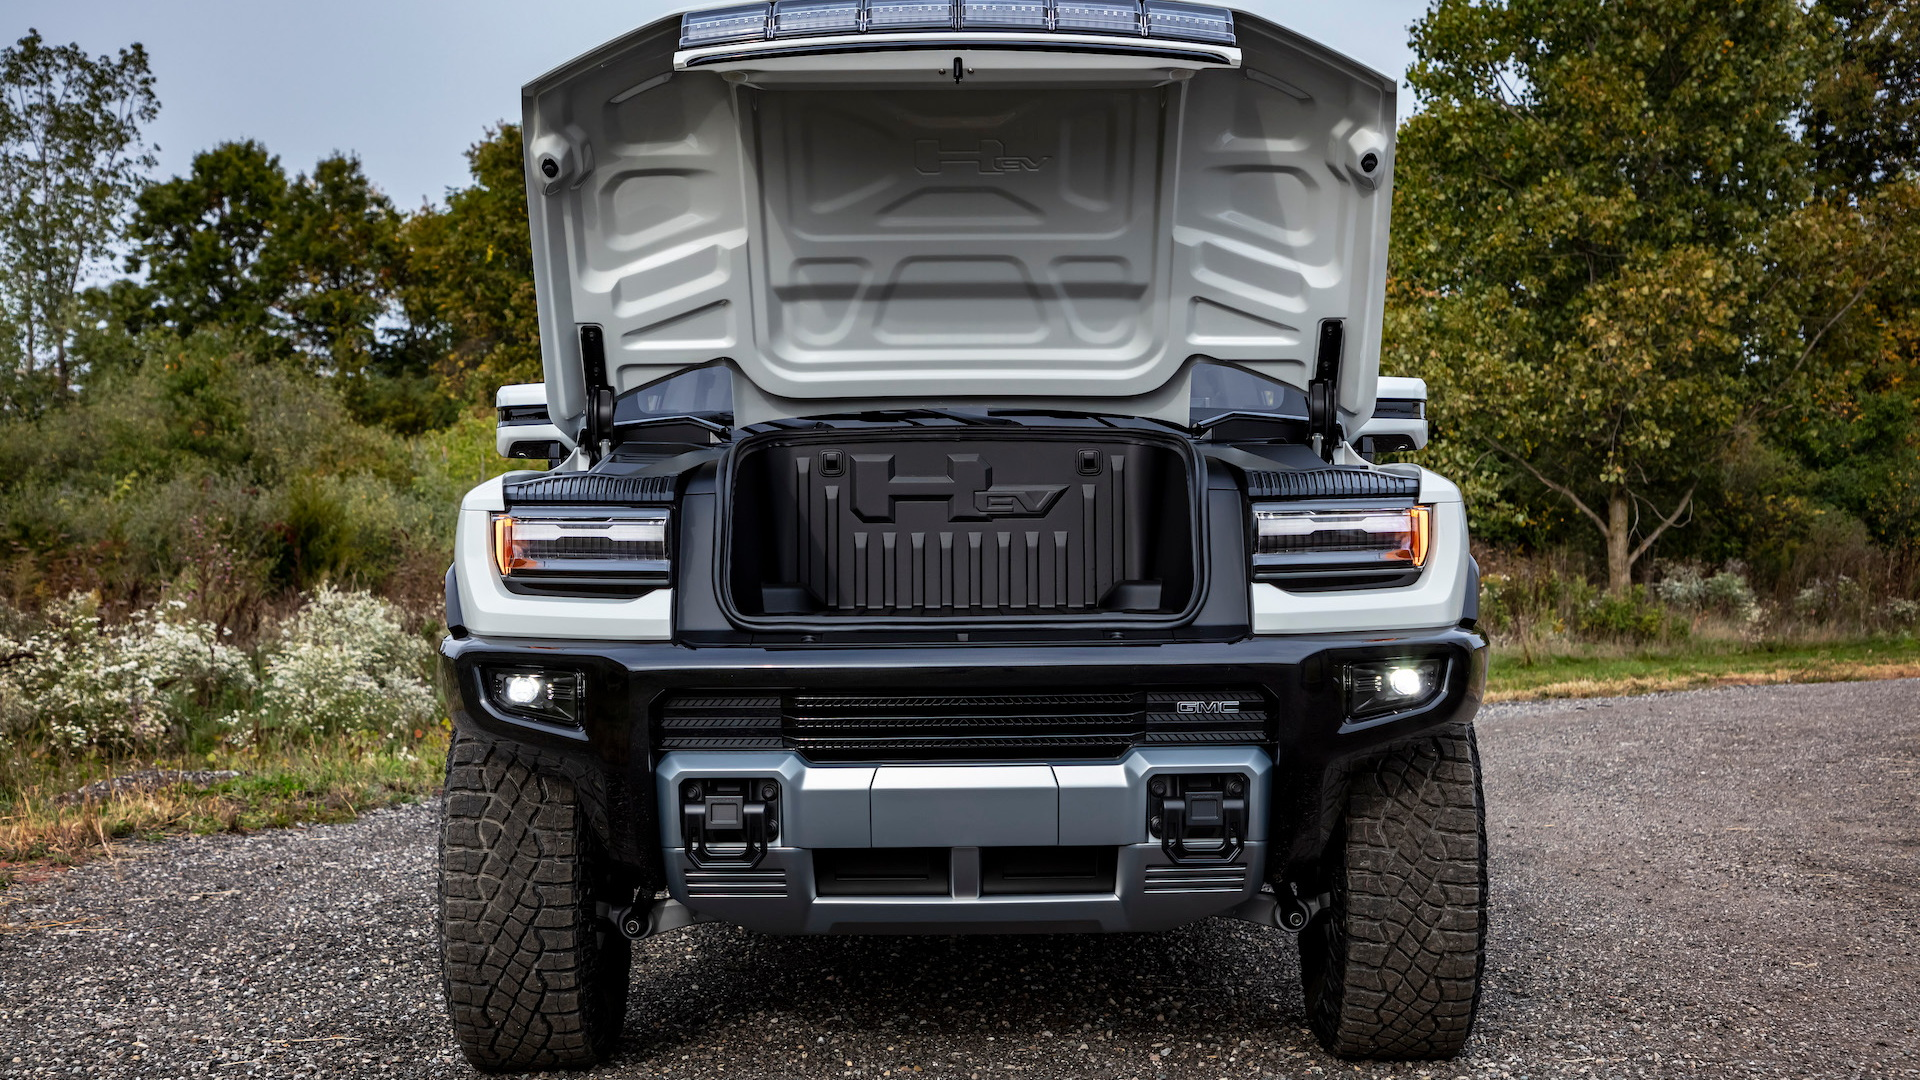 2022 Gmc Hummer Ev Edition 1 350 Mile Electric Off Road Suv Priced At 112 595